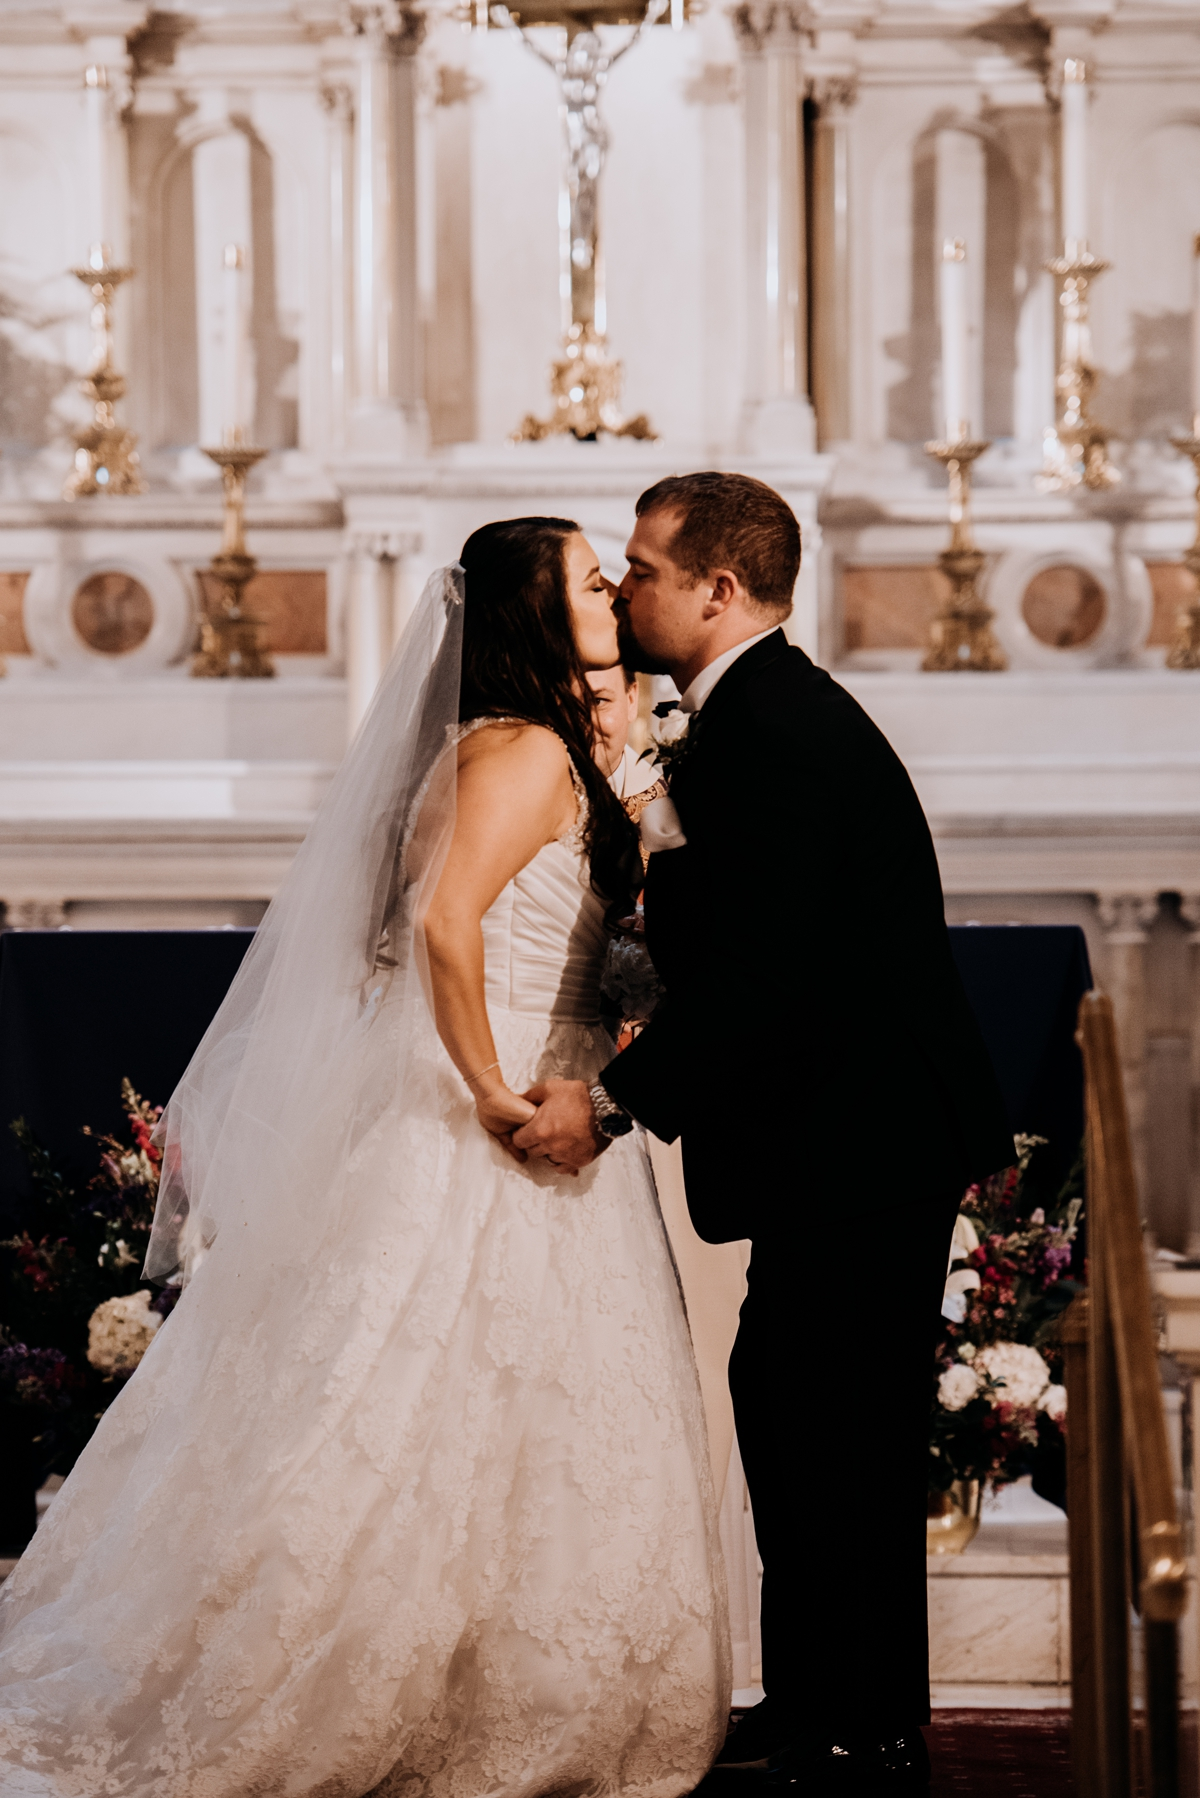 Angela and Blake's Luxury Cescaphe Ballroom Wedding | www.aprillynndesigns.com